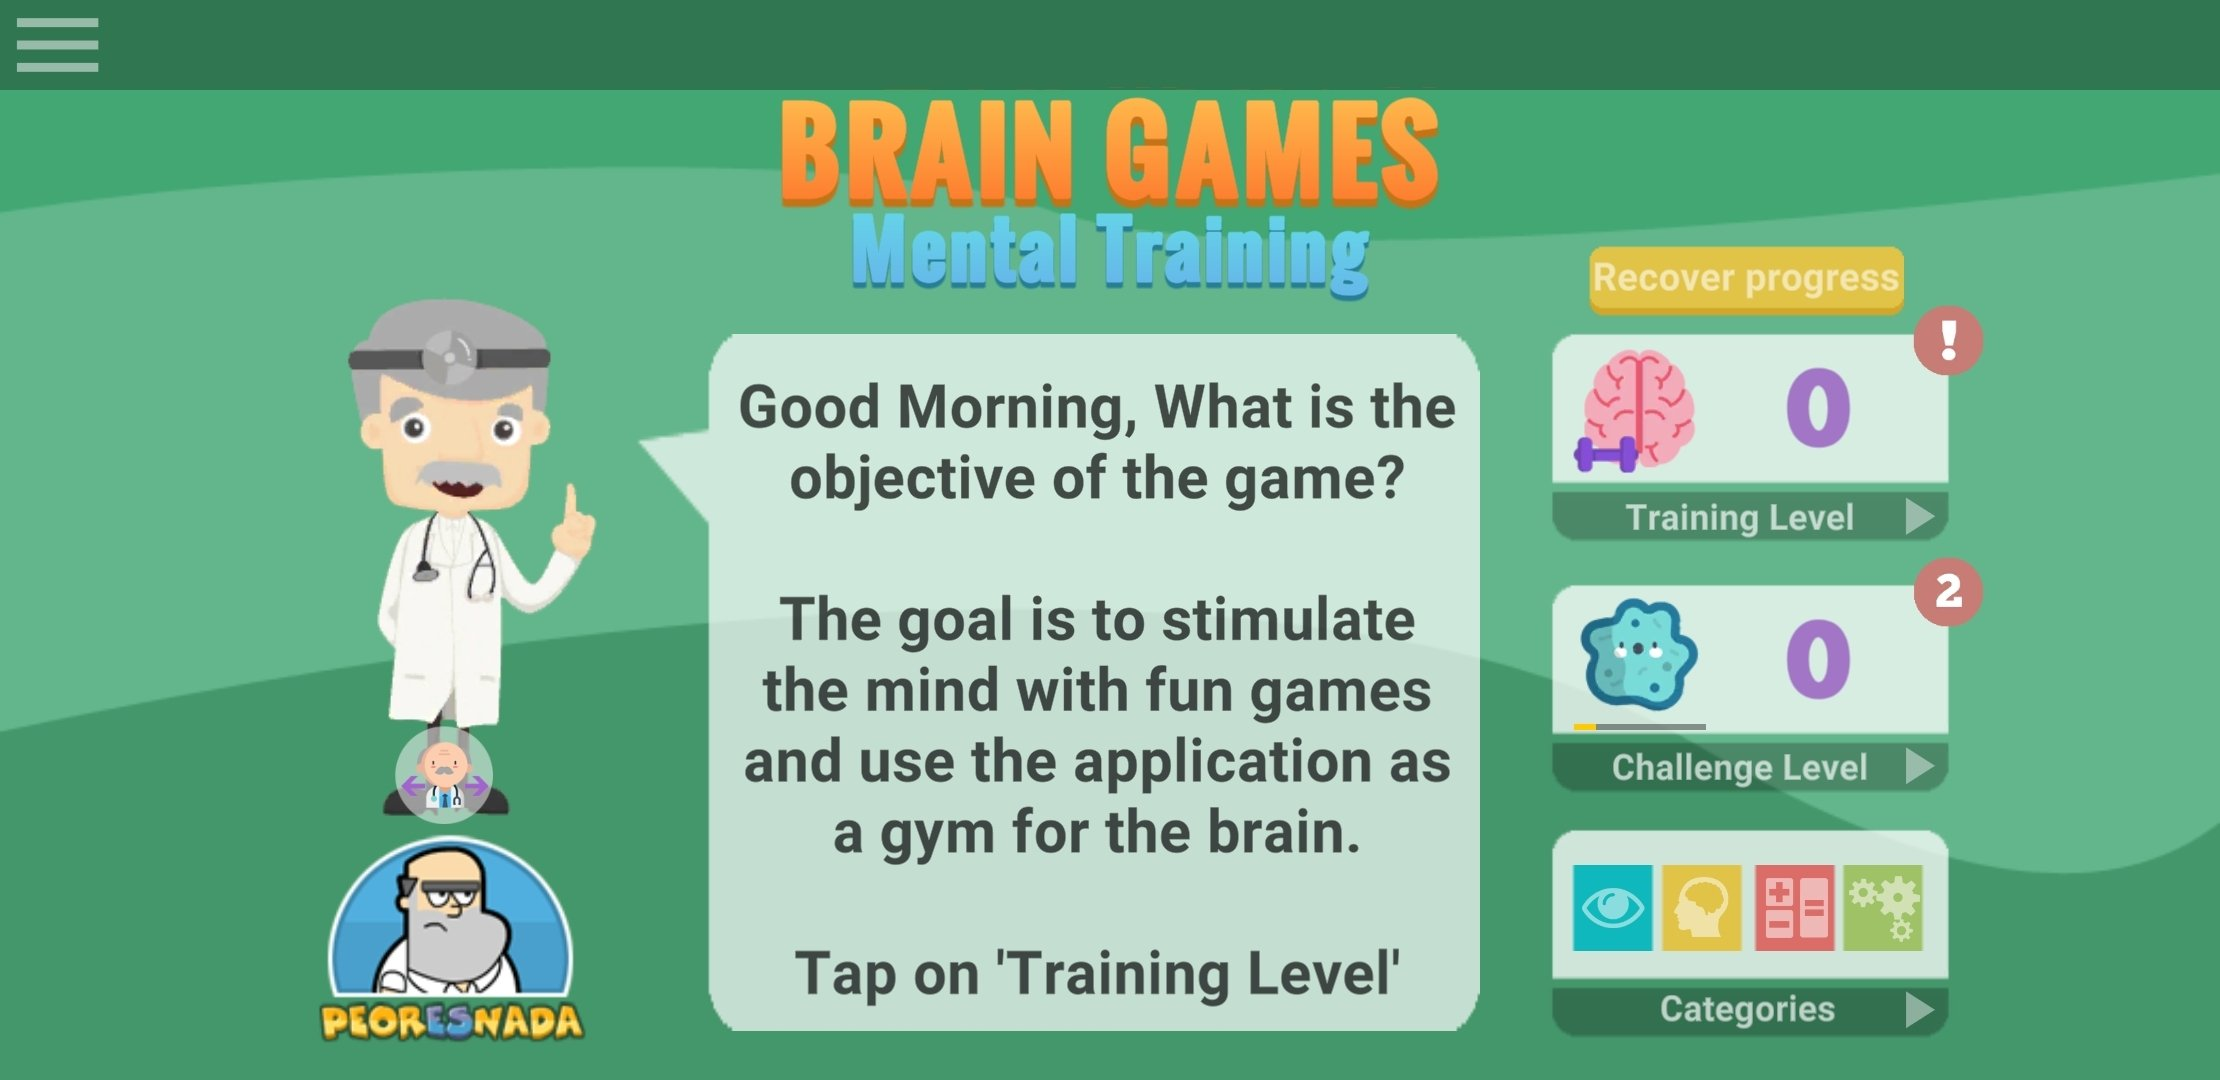 Brain Games: Mental Training Android image 6